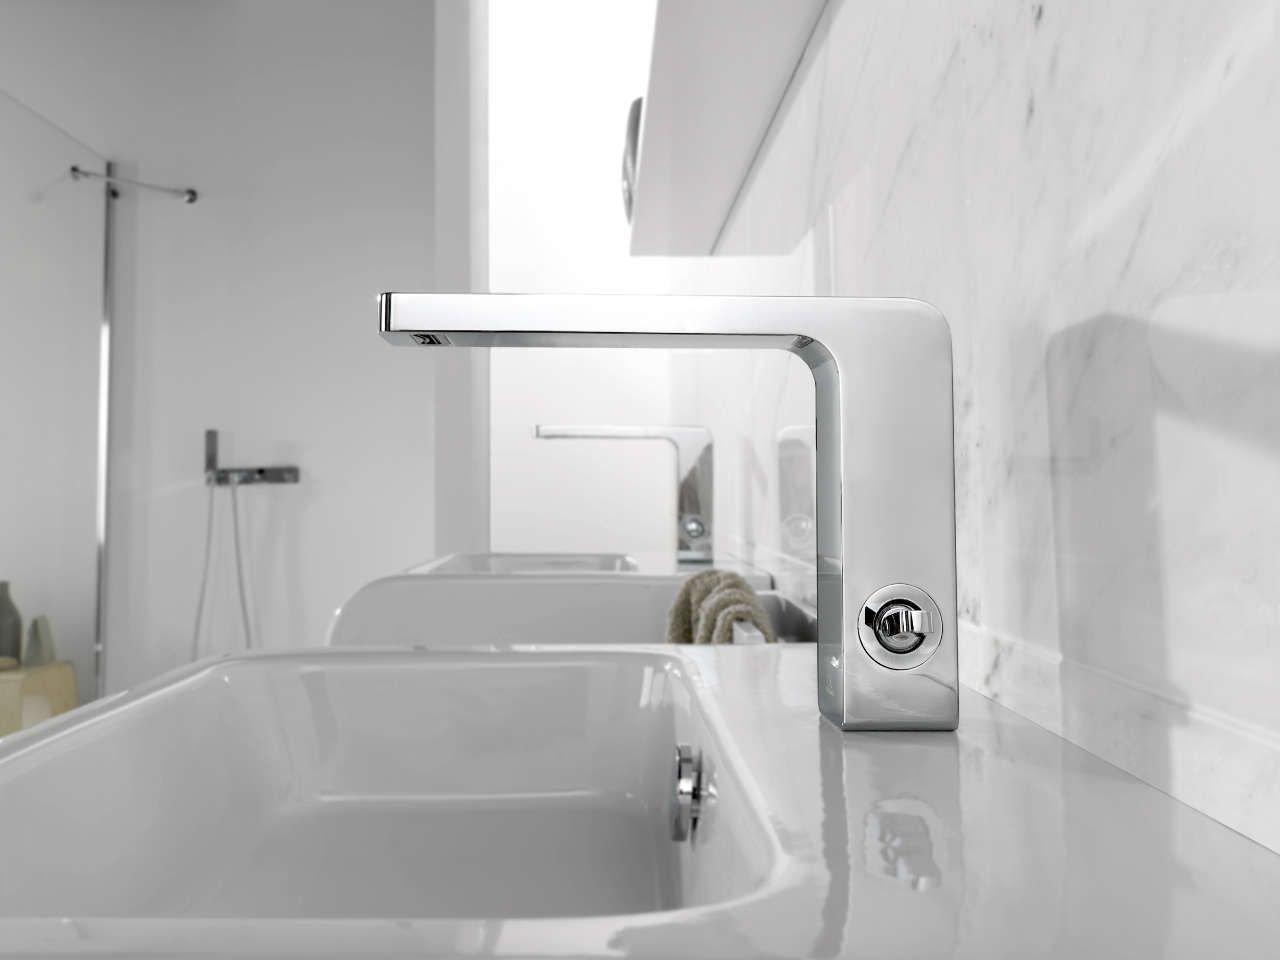 Basin mixer Lounge Blanco | Pool Room Toilet Ideas | Pinterest ...